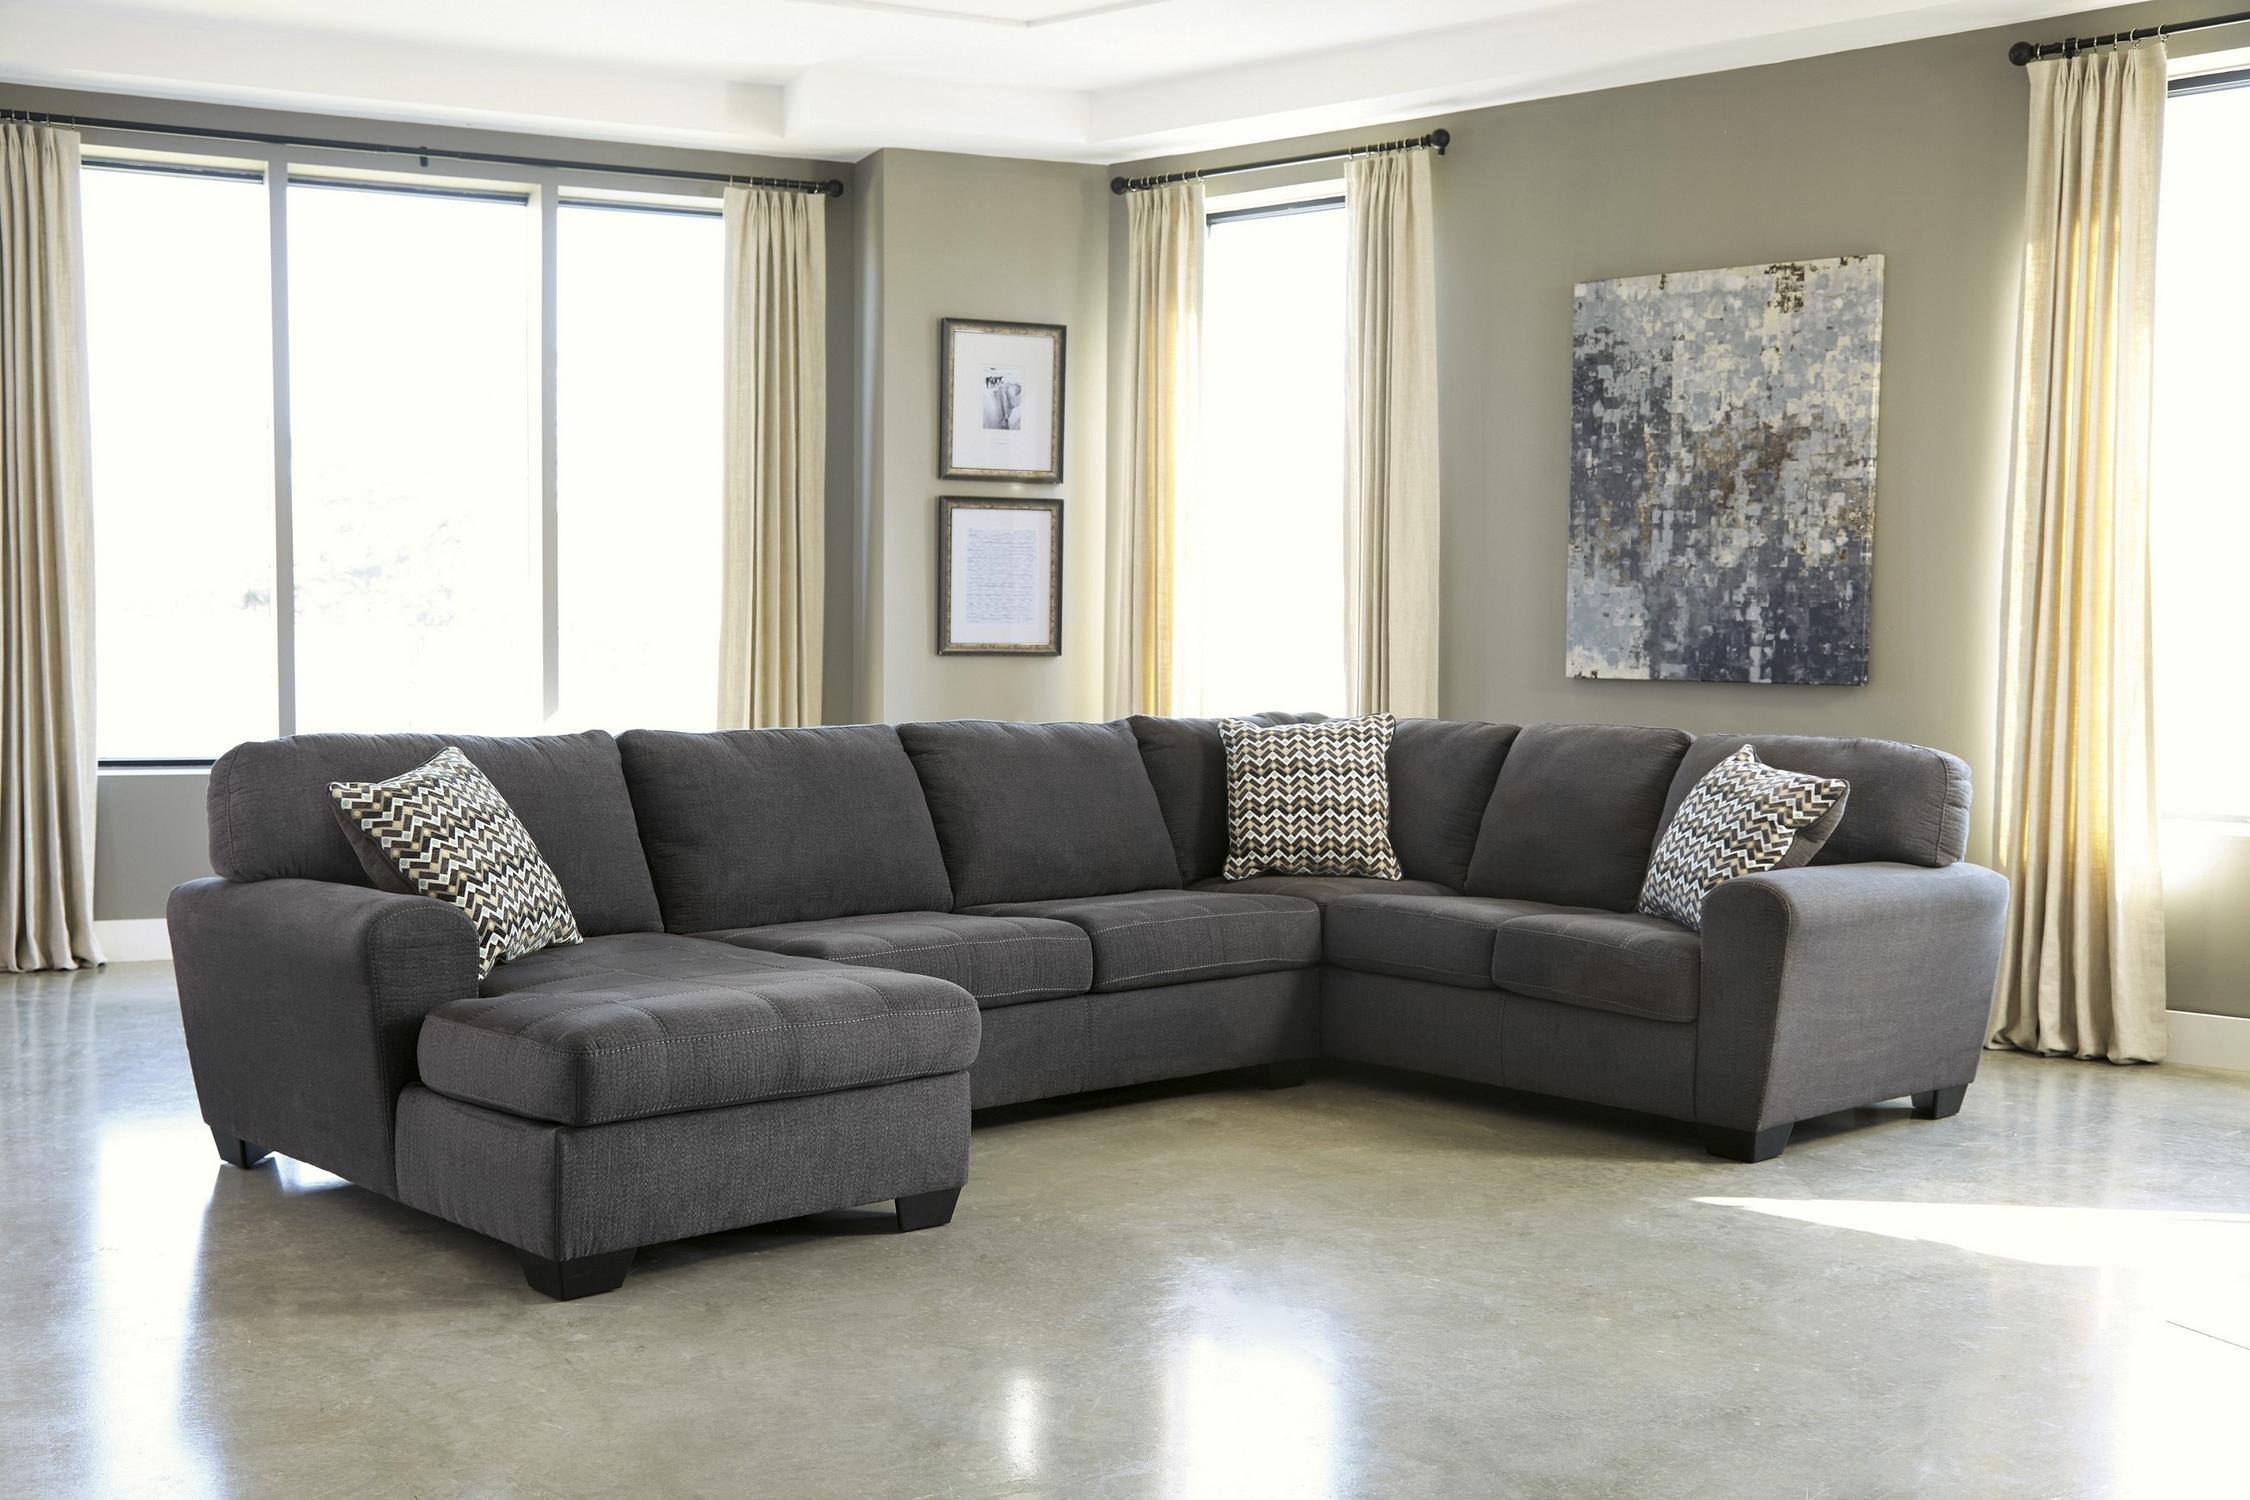 Well Liked Gray Sectional Sofas With Chaise In Alenya 3 Piece Sectional Quartz Fabric Reclining Sectional Grey (View 7 of 15)